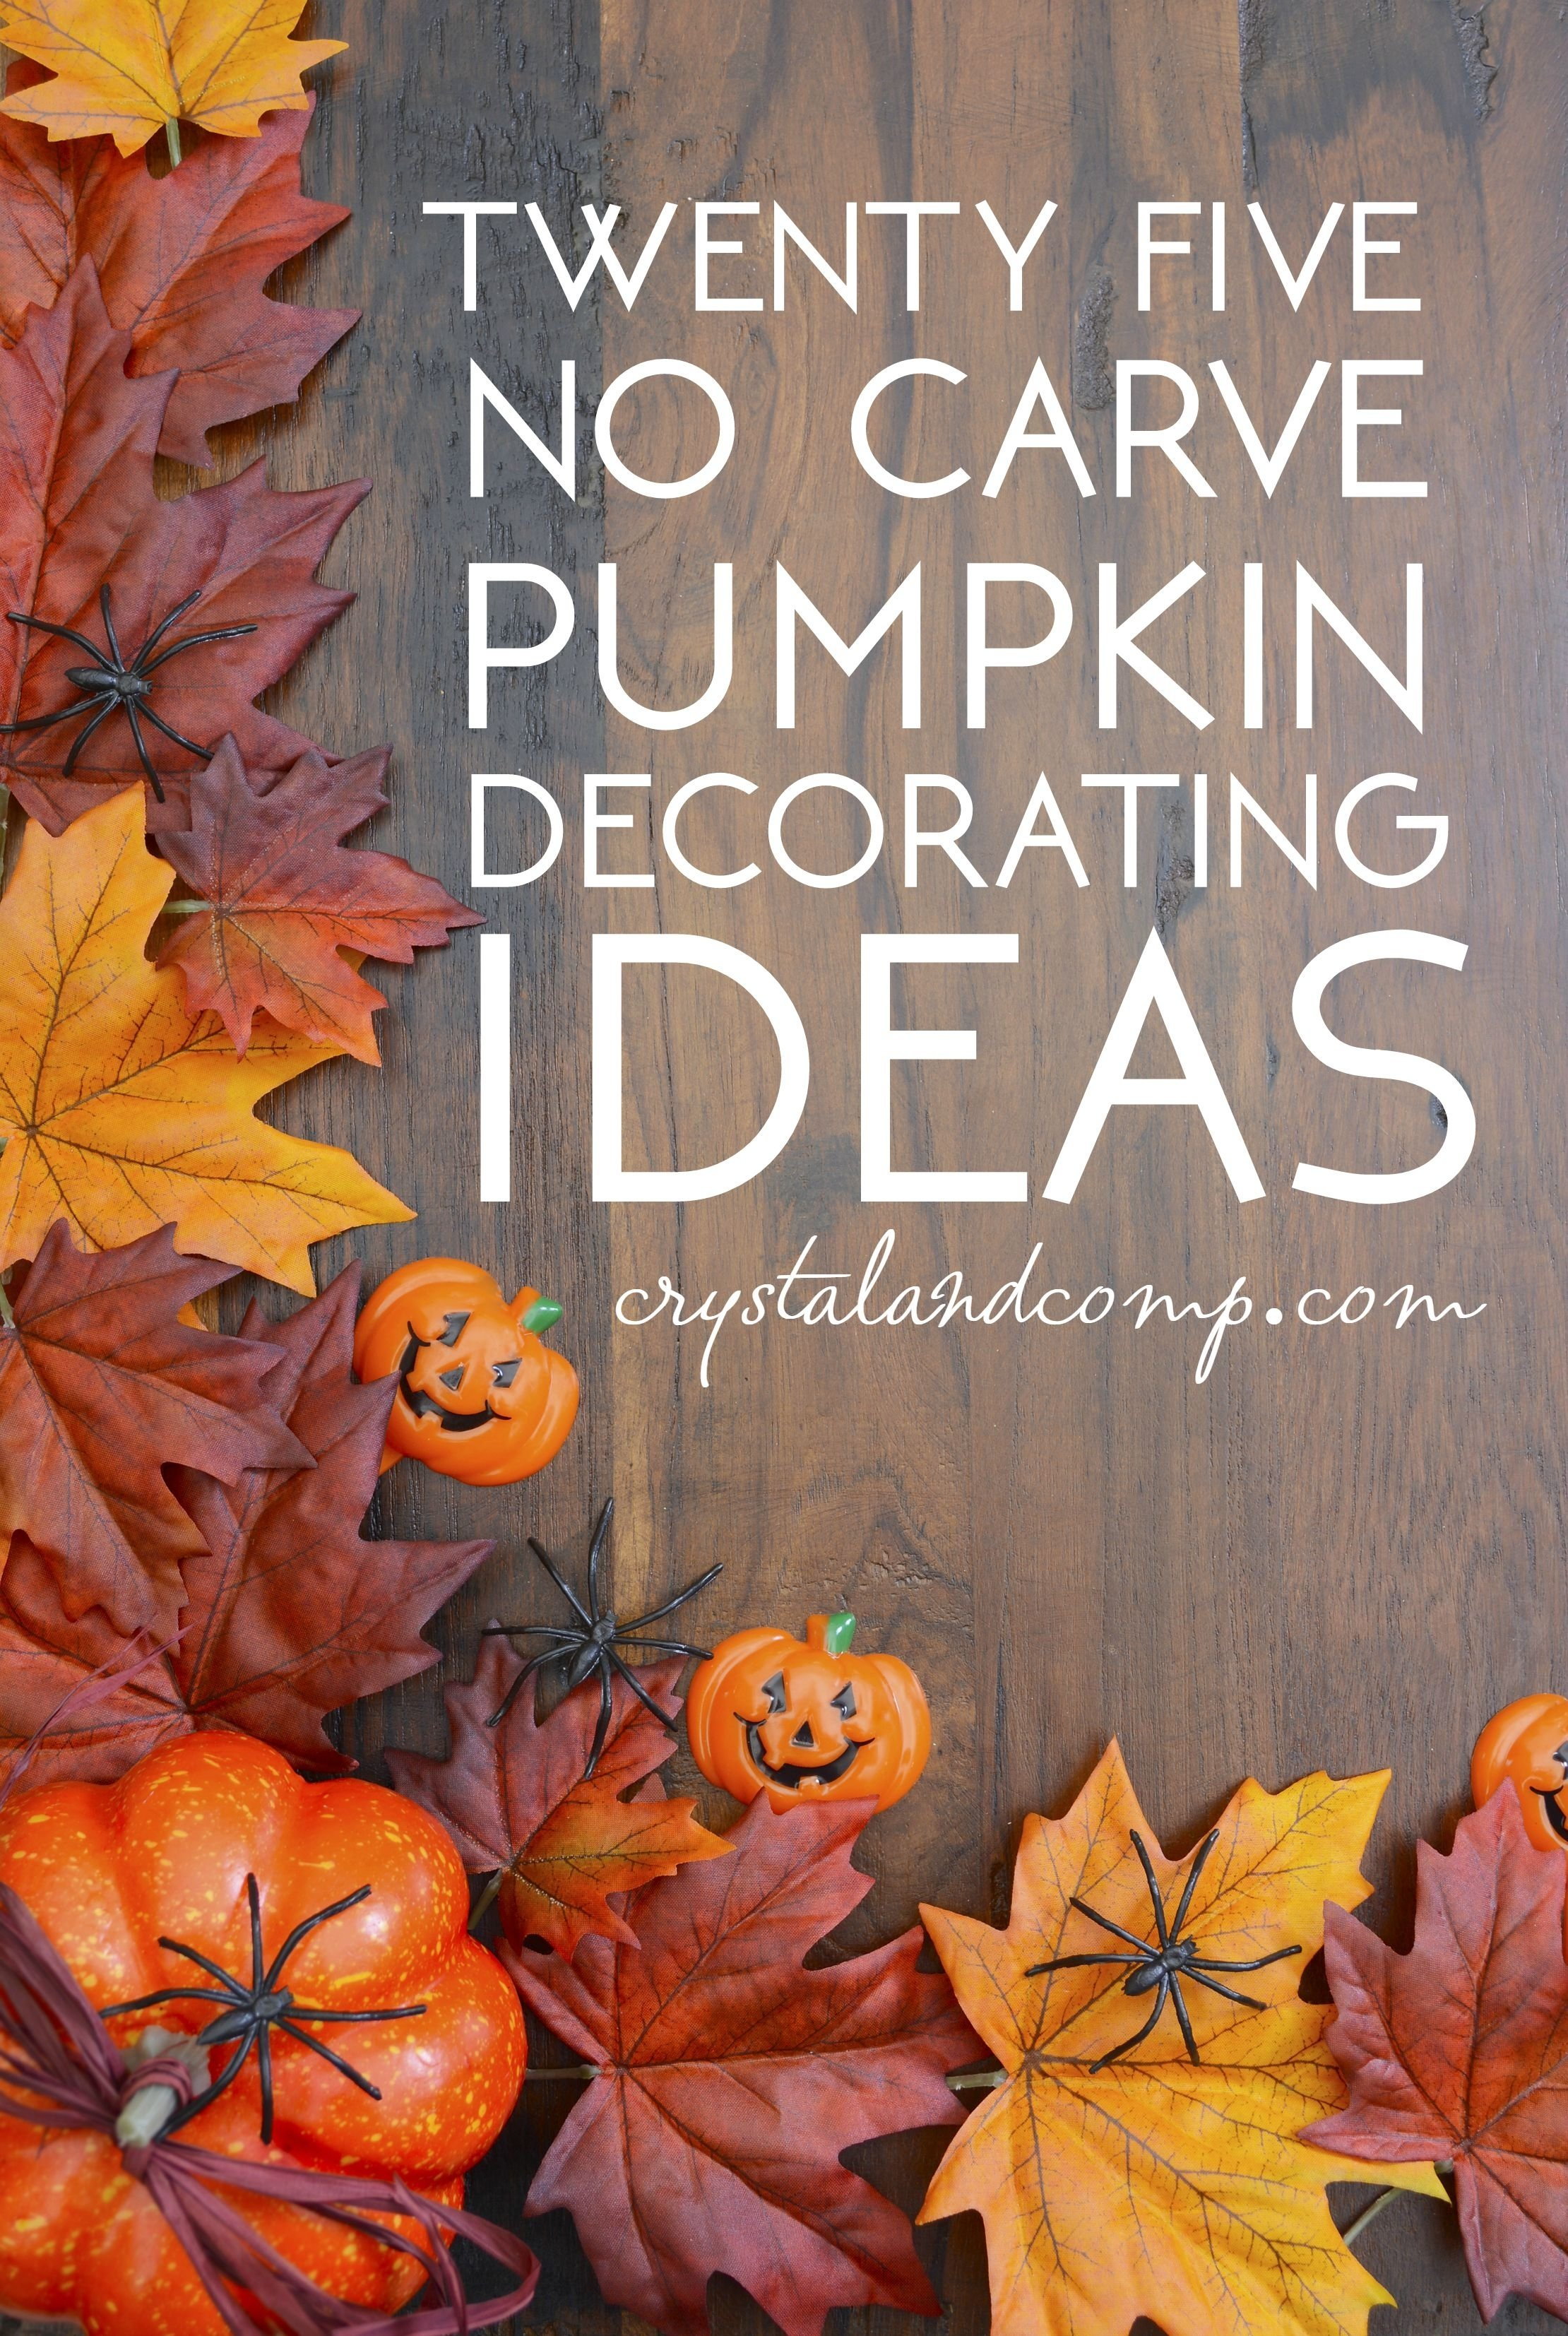 10 Famous No Carve Pumpkin Decorating Ideas no carve pumpkin decorating